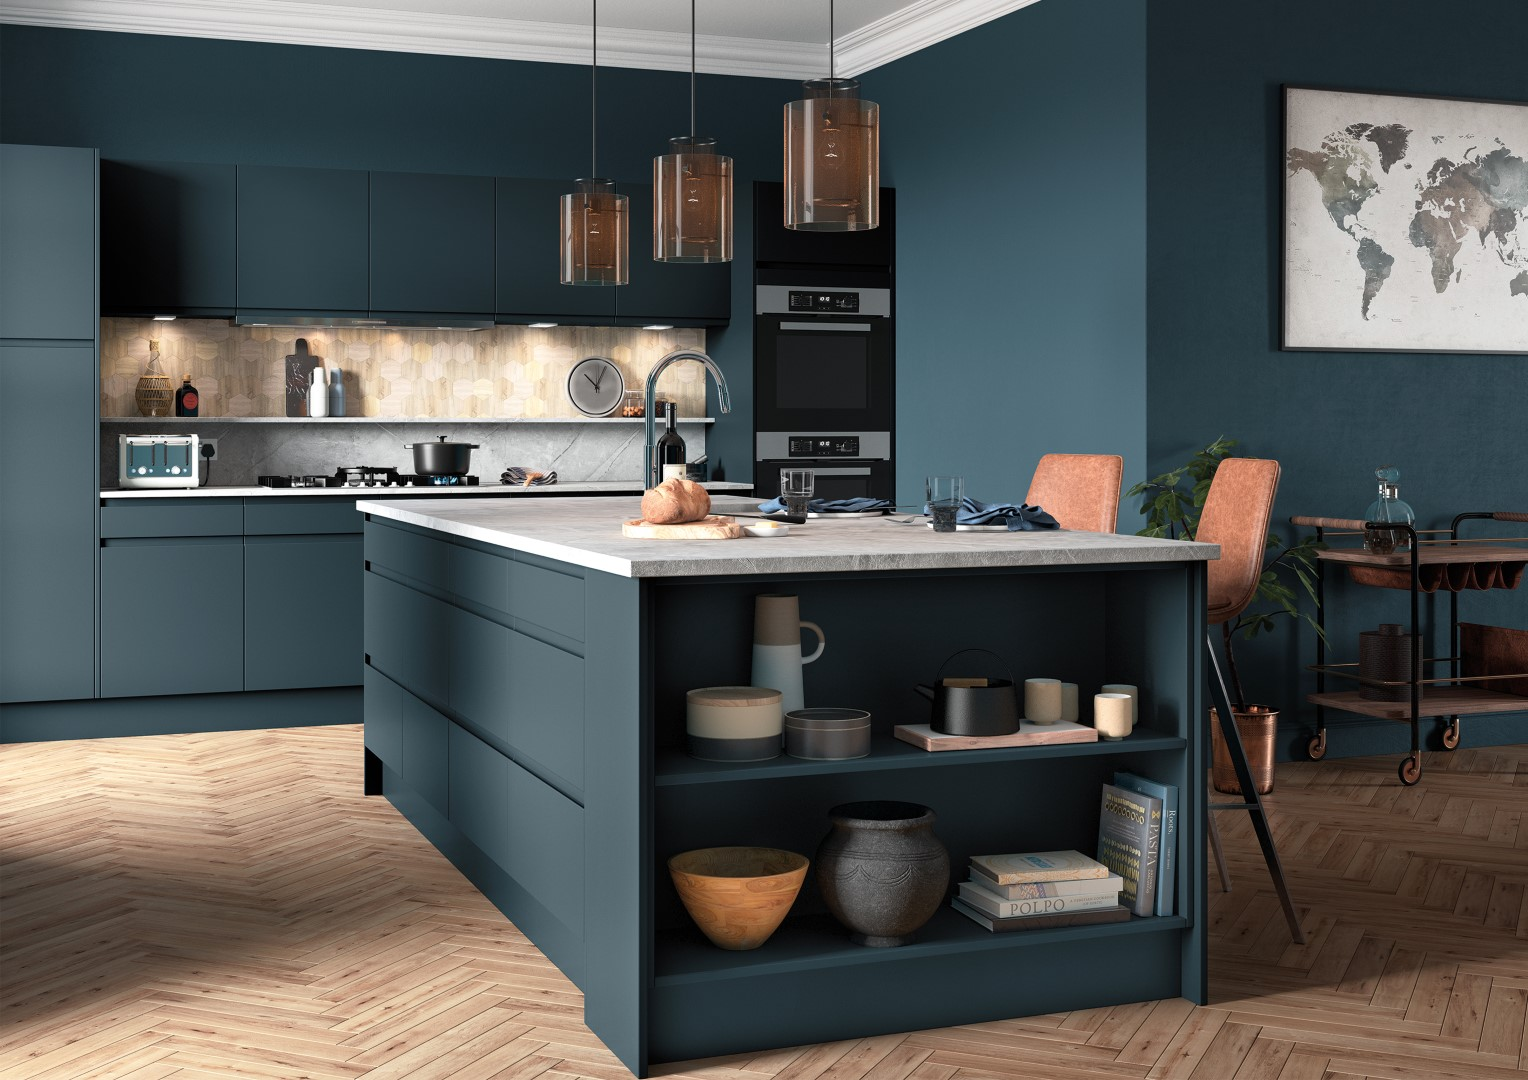 Strada Matte Marine - Kitchen Design - Alan Kelly Kitchens - Waterford - 1